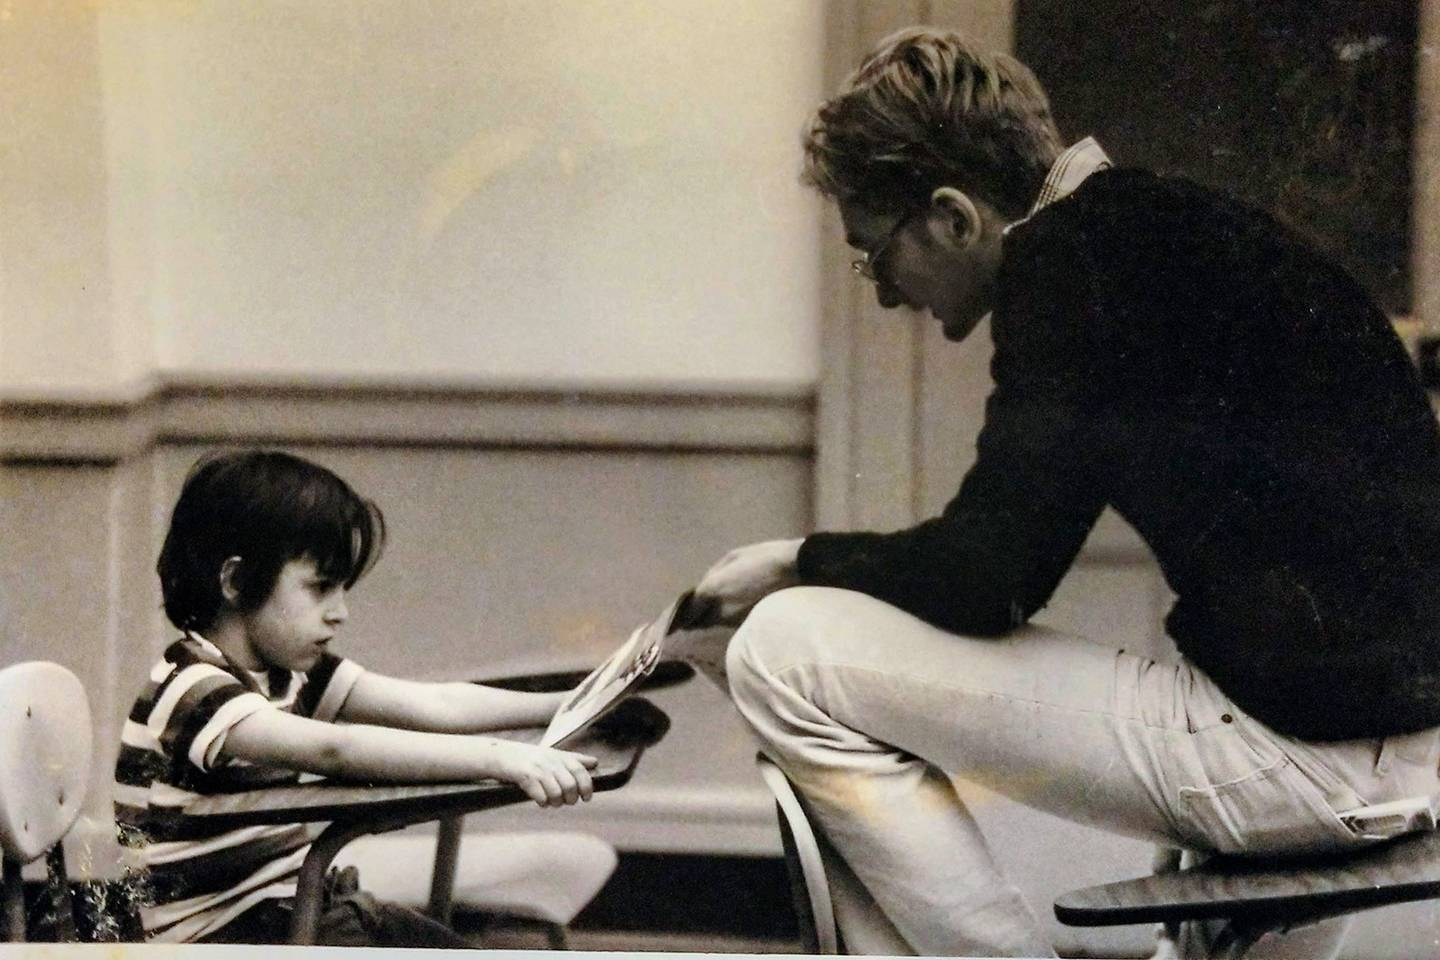 A tutor and child